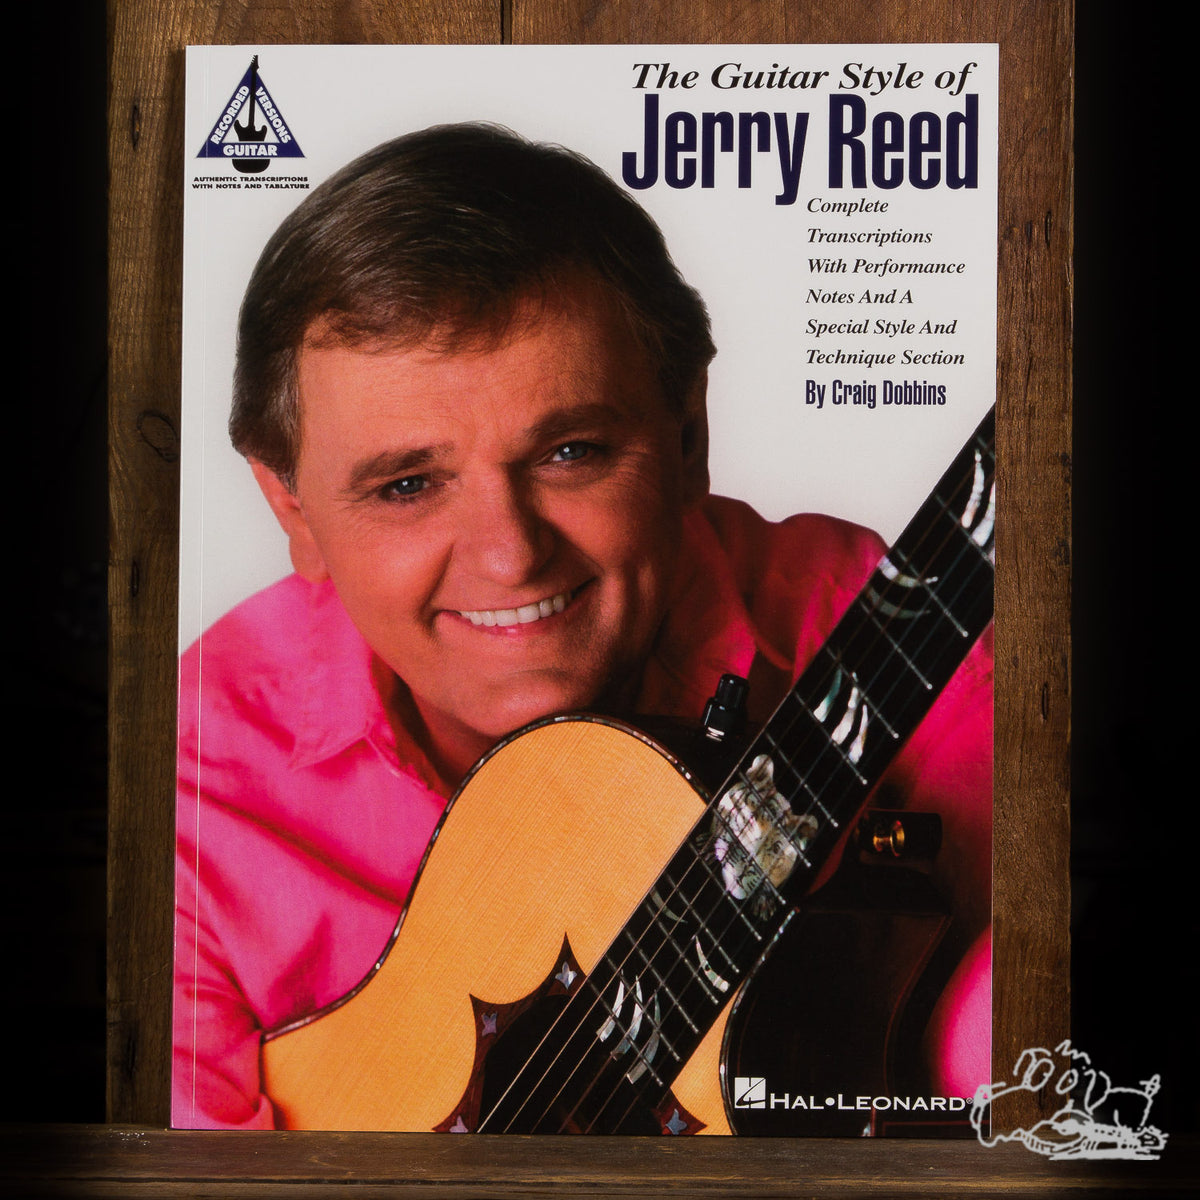 The Guitar Style of Jerry Reed